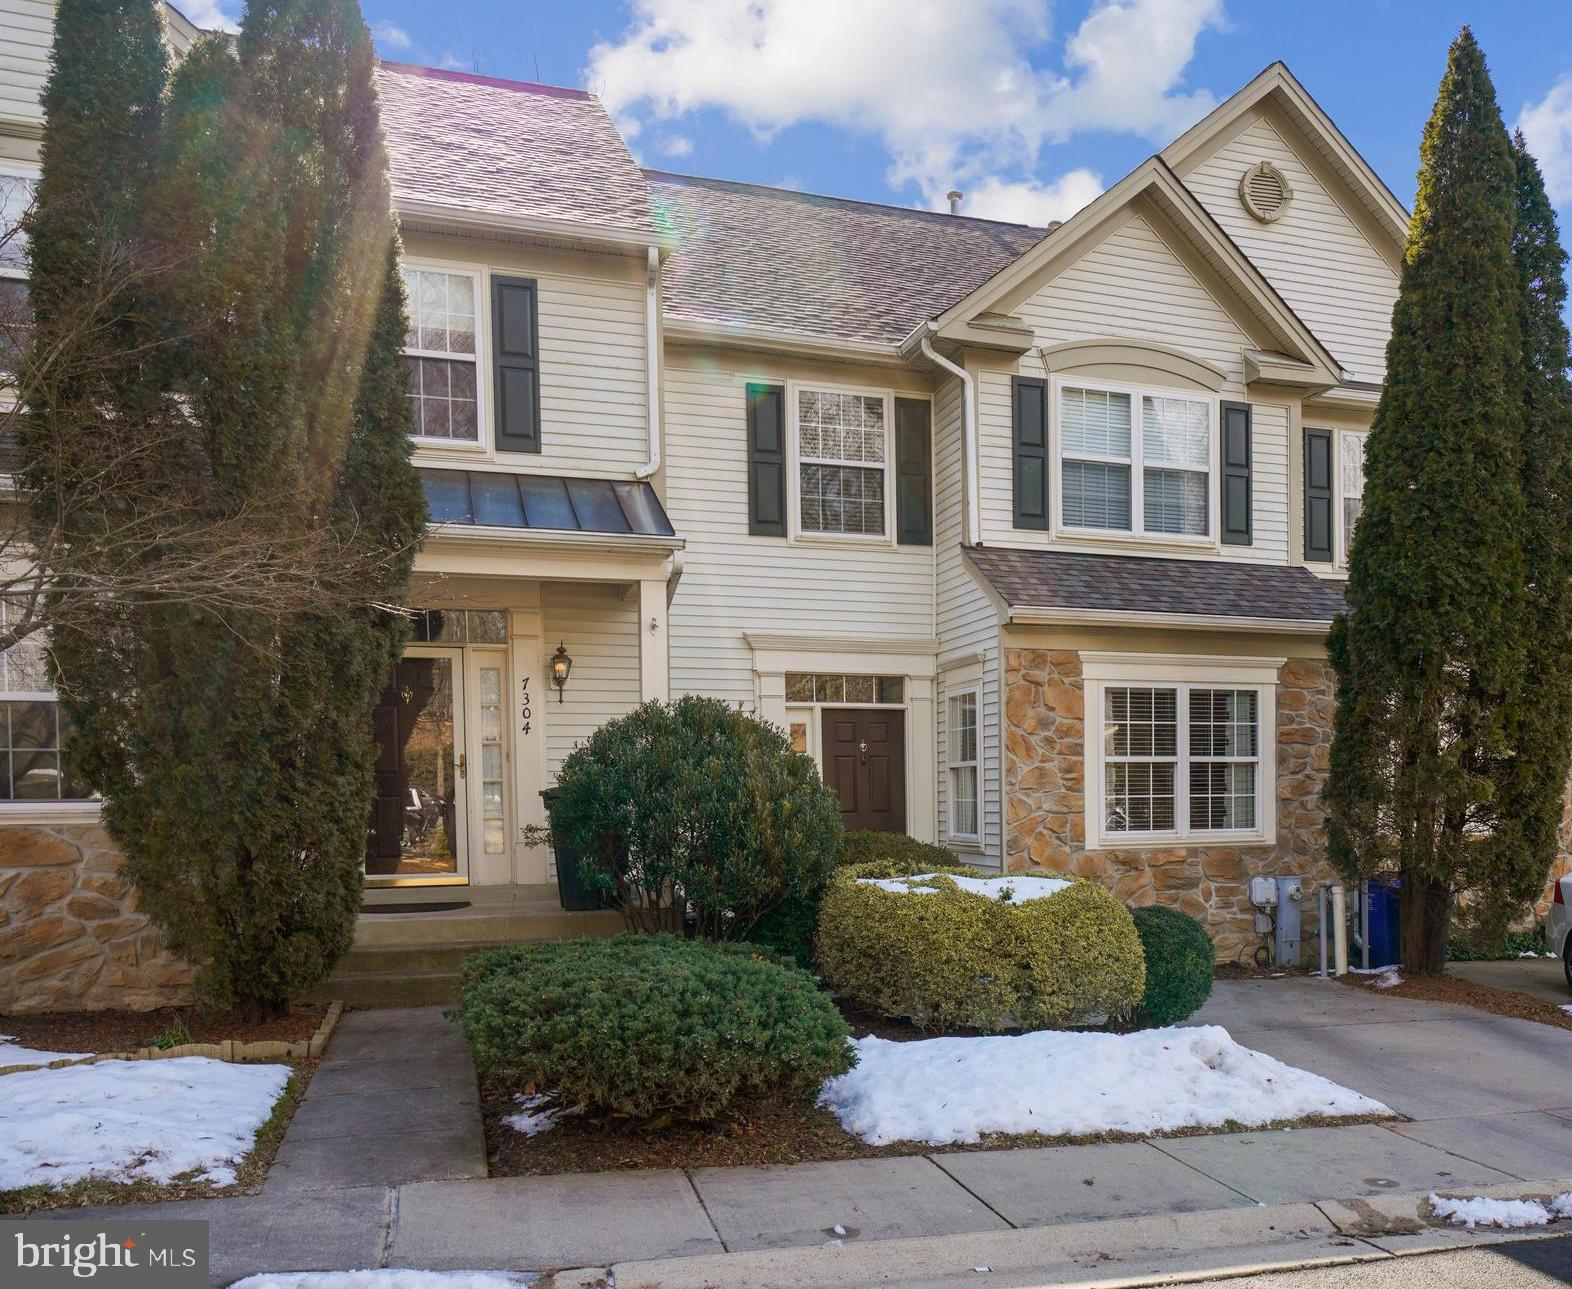 SHOWINGS BEGIN 2/24. You won't want to miss all that this wonderful home has to offer! This fantasti